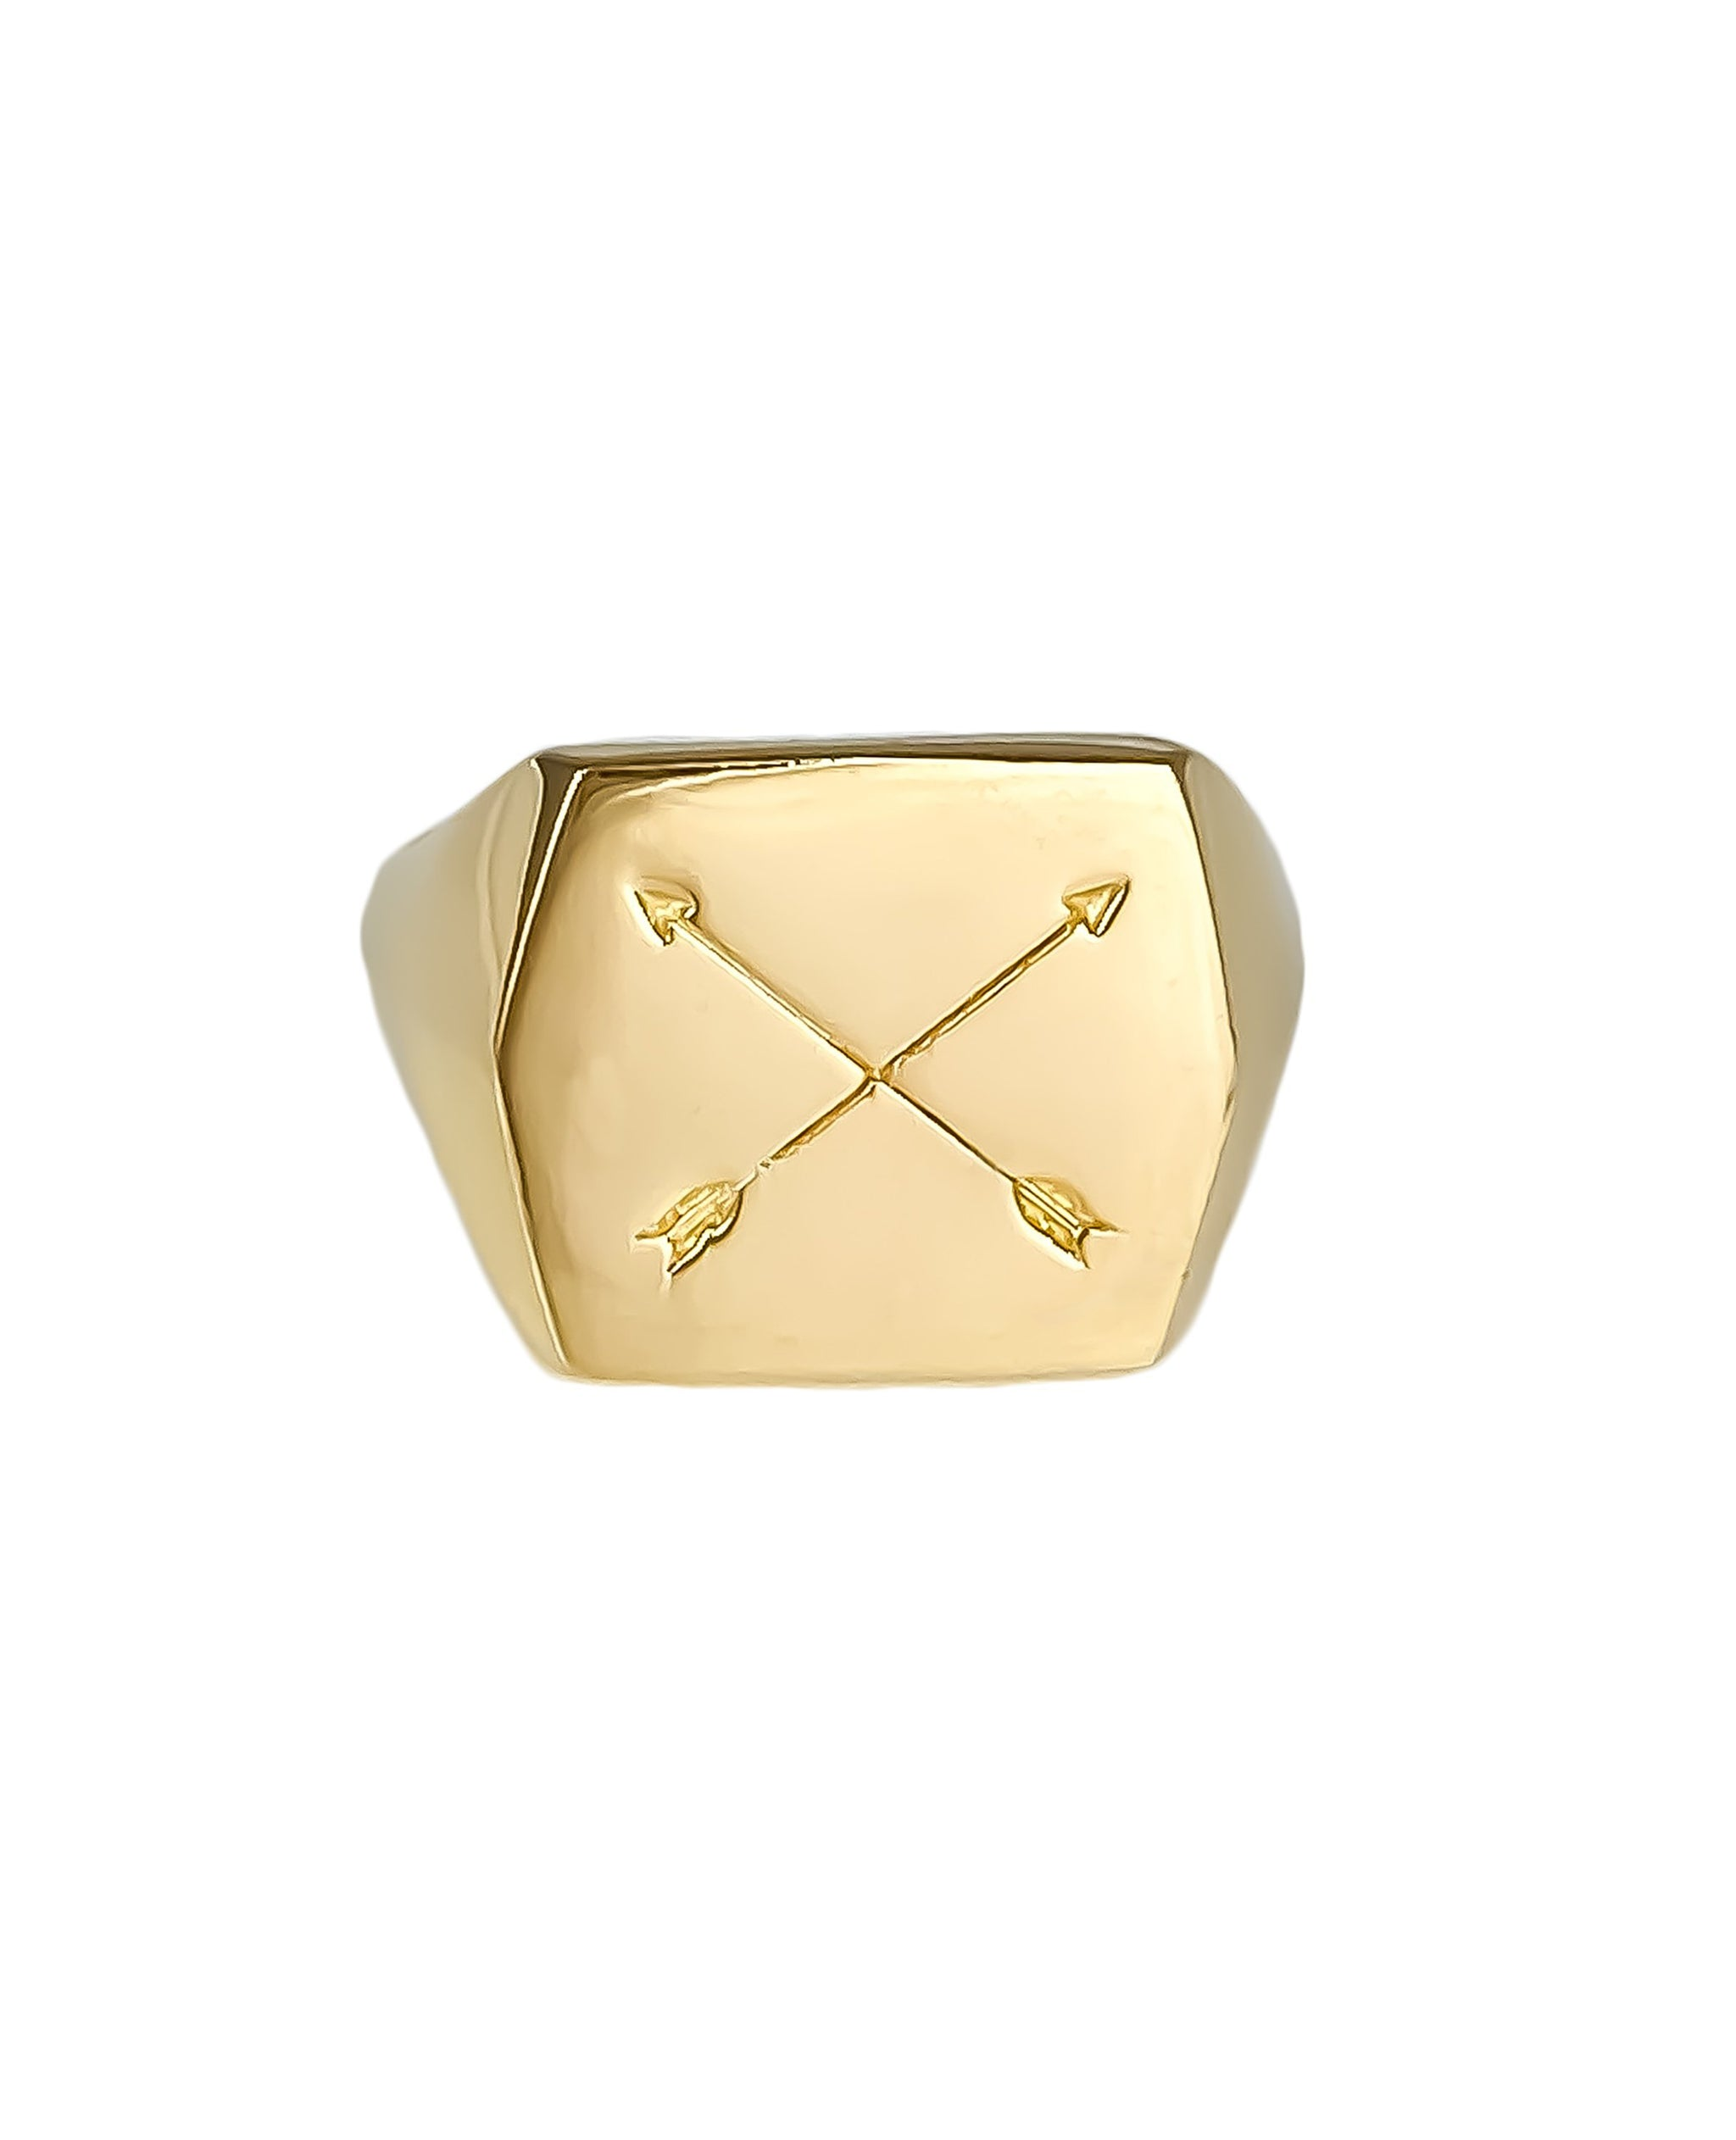 Nomad Ring, 14k Gold Vermeil Squared signet Ring with crossed arrows,